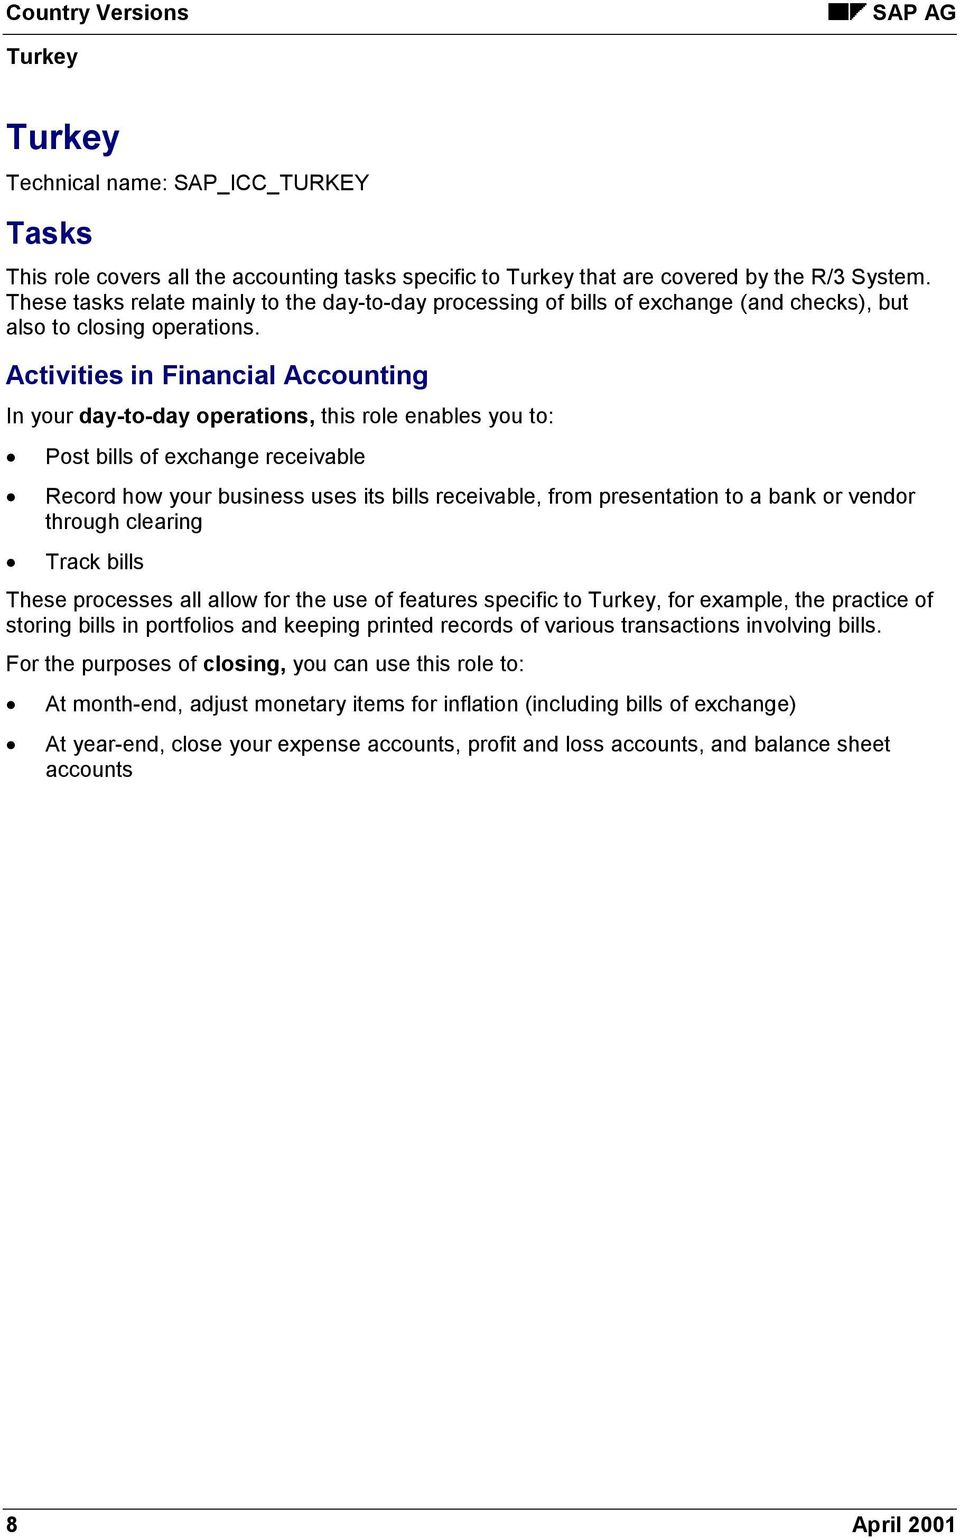 Activities in Financial Accounting In your day-to-day operations, this role enables you to: Post bills of exchange receivable Record how your business uses its bills receivable, from presentation to